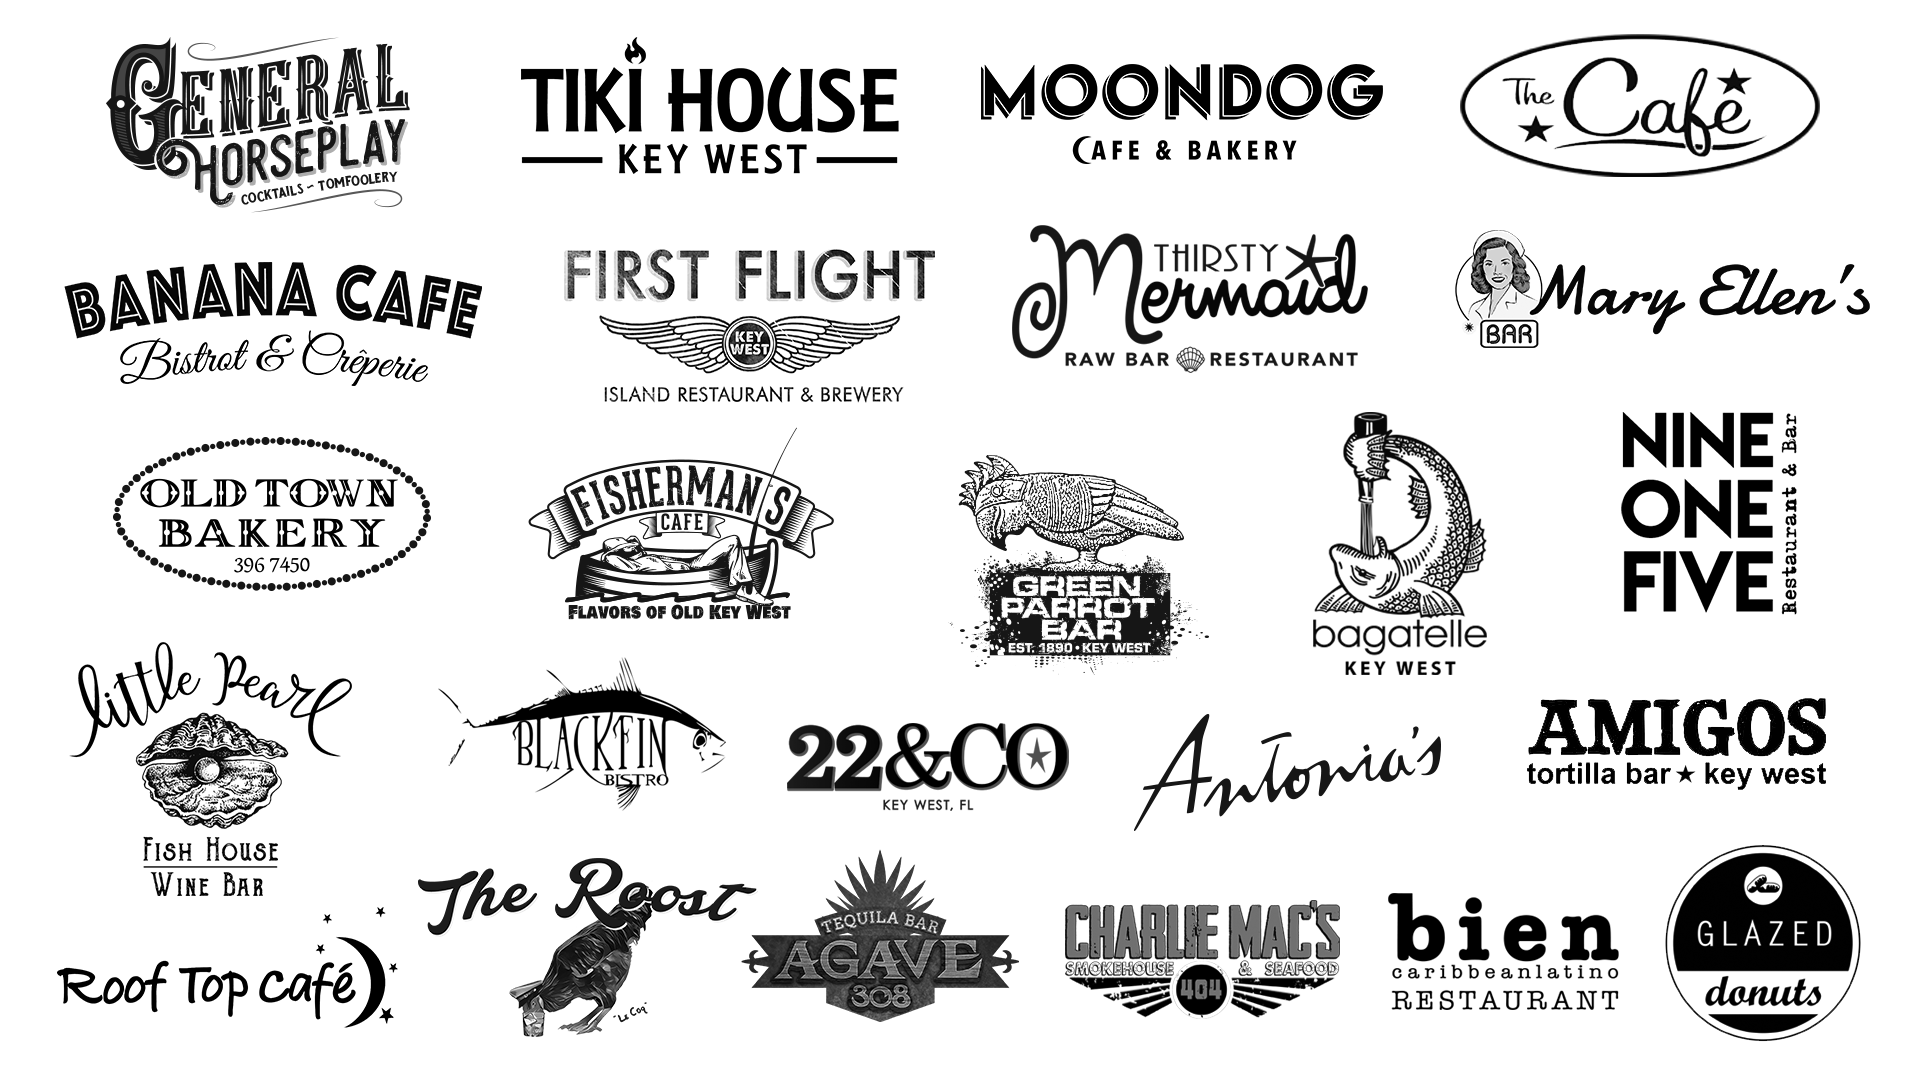 Logos of Wonderdog Studios' Bar & Restaurant client list. Includes: General Horseplay, Tiki House Key West, Moondog Cafe & Bakery, The Cafe, Banana Cafe, First Flight Island Restaurant & Brewery, Thirsty Mermaid Raw Bar & Restaurant, Mary Ellen's Bar, Old Town Bakery, Fisherman's Cafe, Green Parrot Bar, Bagatelle Key West, Nine One Five Restaurant & Bar, Little Pearl Fish House & Wine Bar, Black Fin Bistro, 22 & Co Key West, Antonia's Restaurant, Amigos Tortilla Bar Key West, Roof Top Cafe, The Roost, Agave 308 Tequila Bar, Charlie Mac's, Bien Caribbean Latino Restaurant, Glazed Donuts